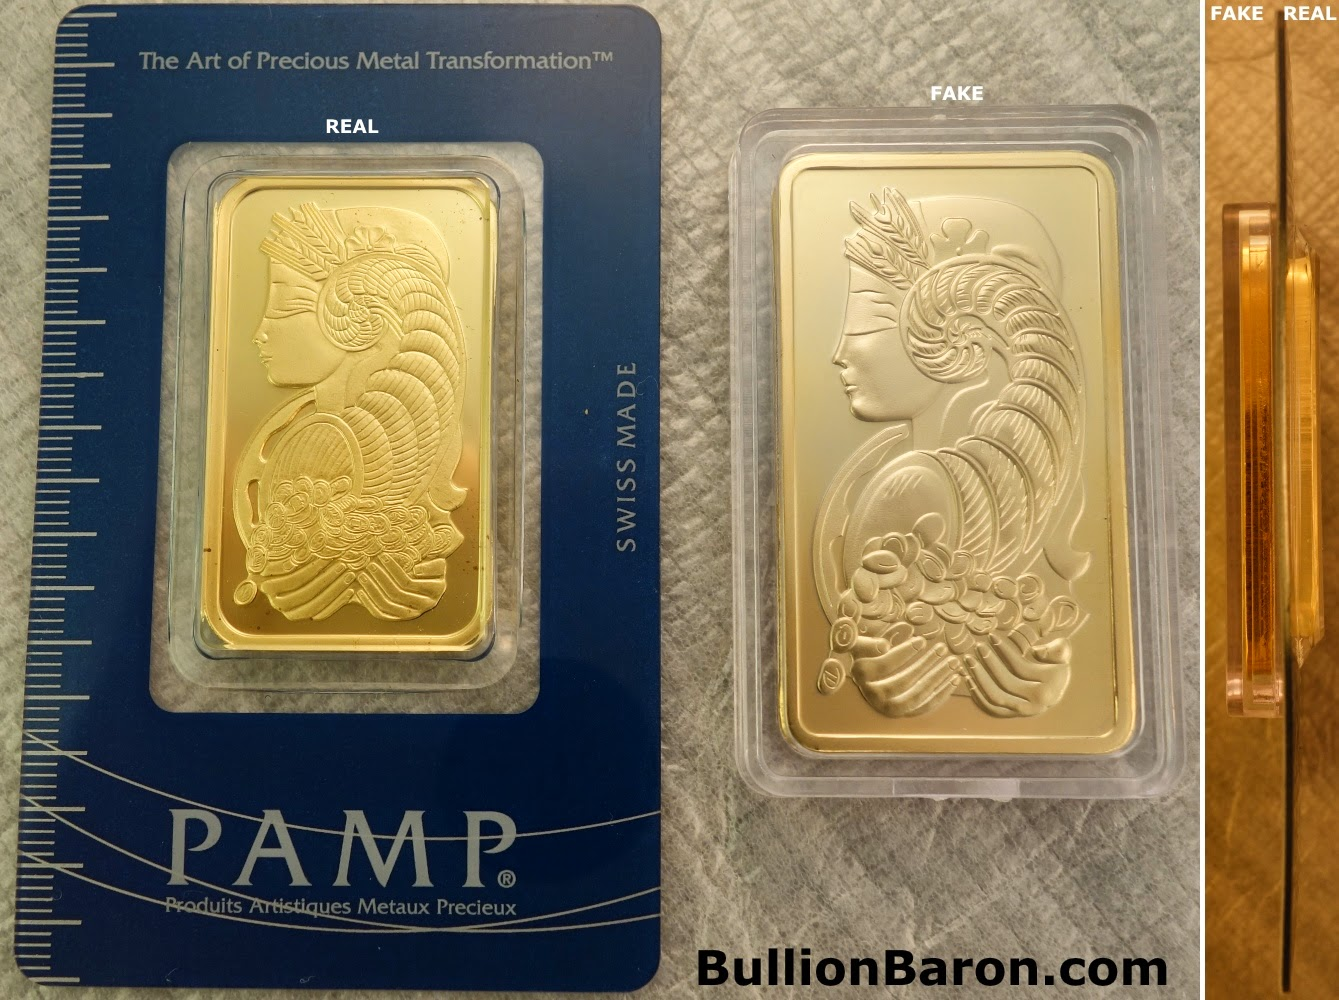 Replica Vs Real 1oz Gold Pamp Bar Comparison Bullion Baron